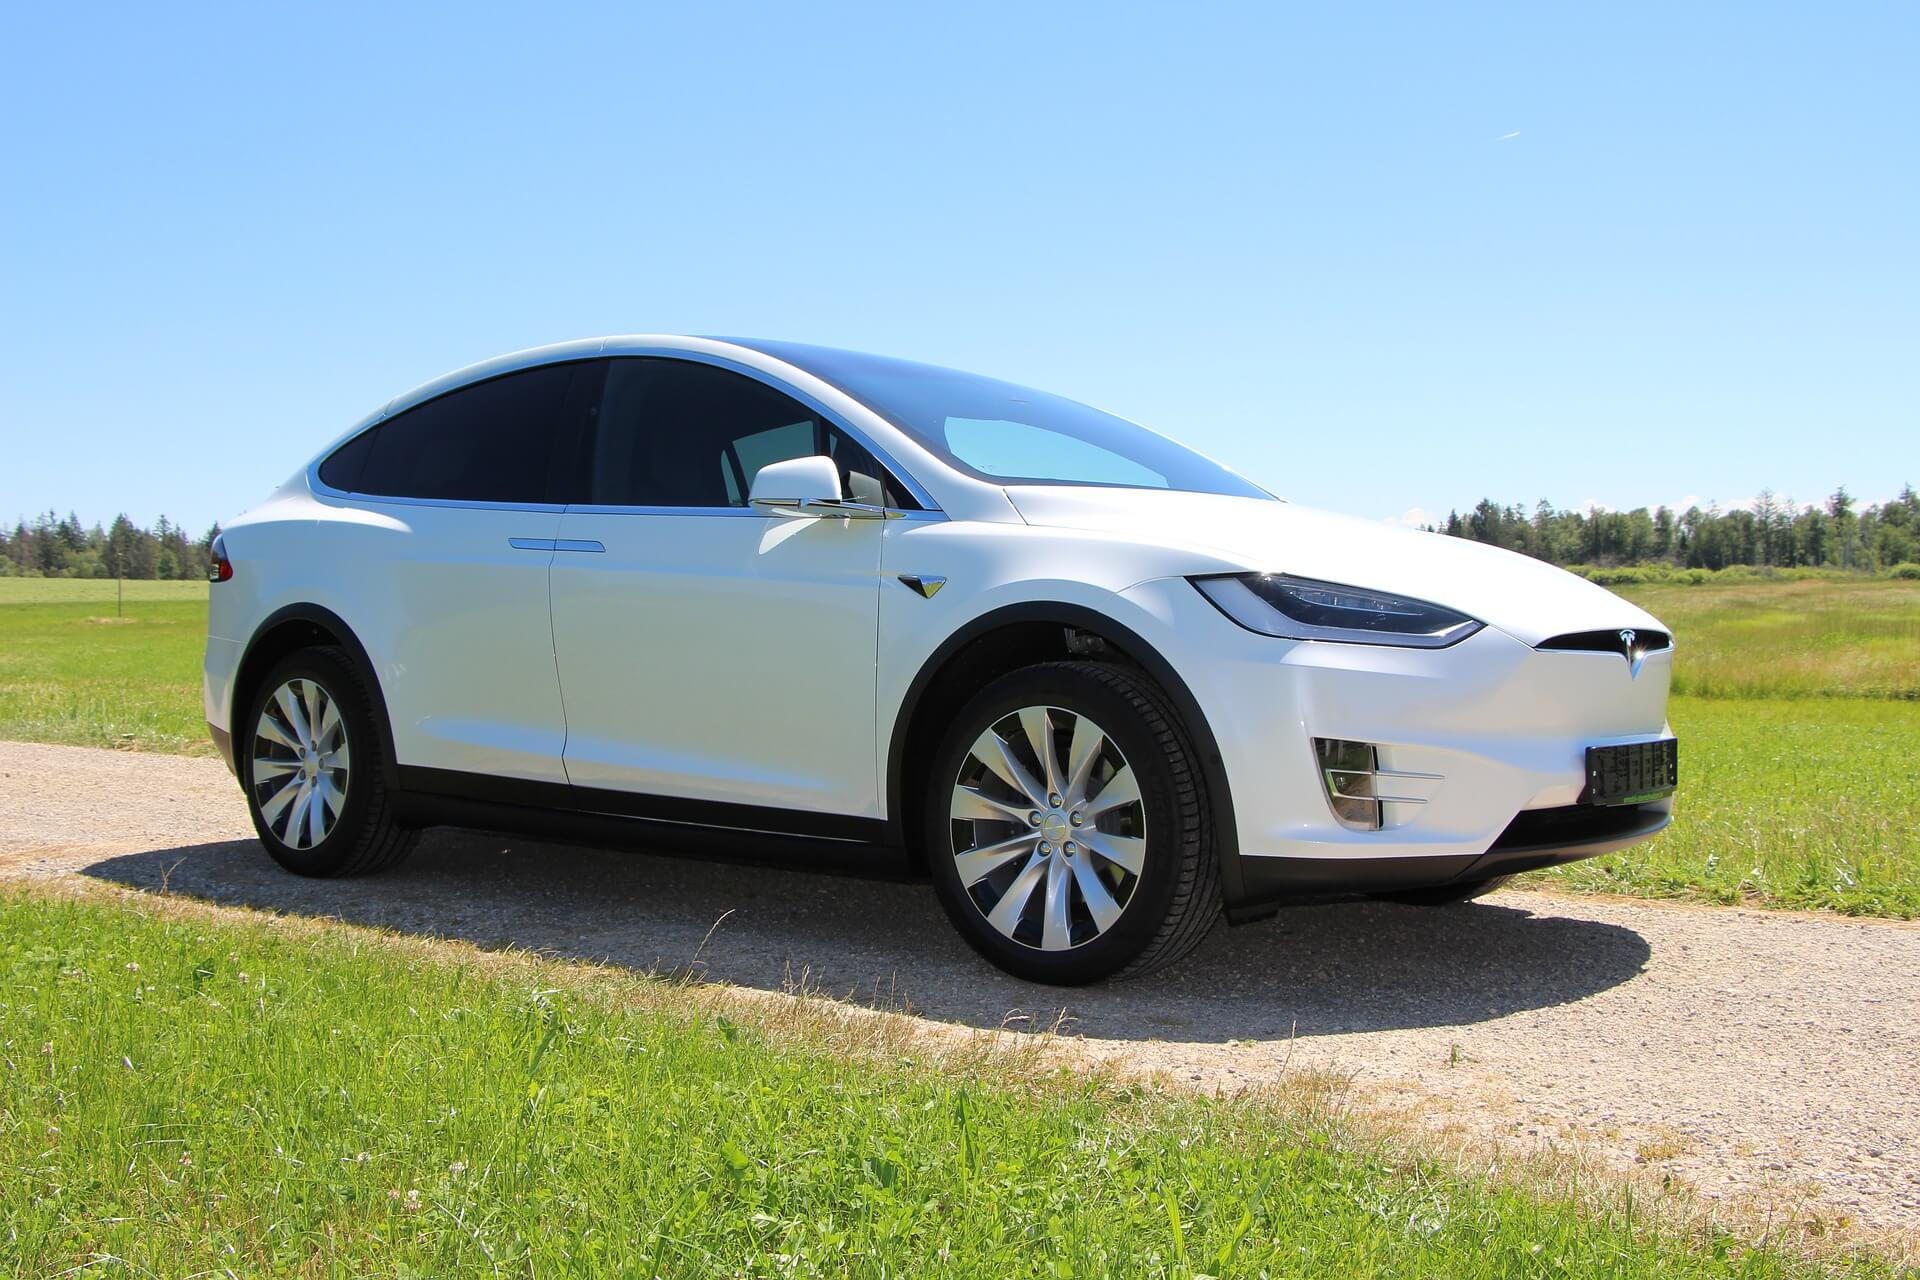 A white Tesla Model X SUV parked on a path with a grassy field background. Segreve & Hall can provide your Tesla with car insurance in North Andover, MA.